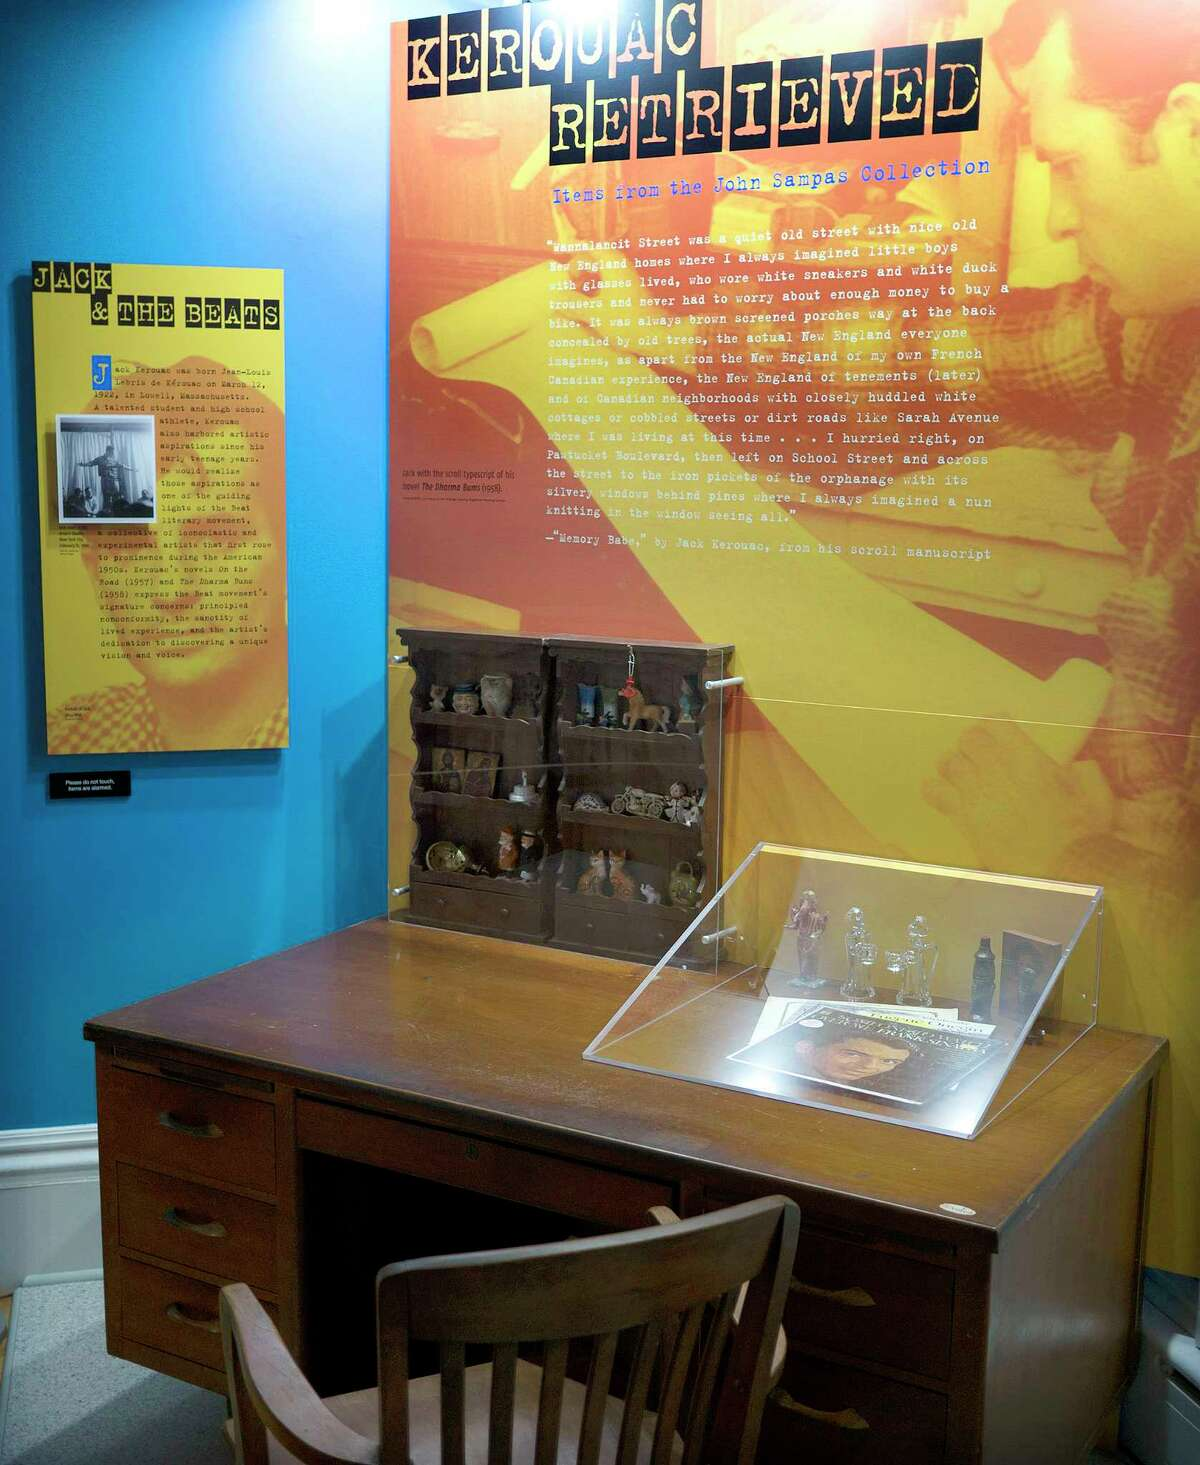 """In this Sept. 18, 2015, photo provided by the University of Massachusetts, Lowell, some of author Jack Kerouac's belongings, including a Frank Sinatra album and collection of figurines, are displayed on the desk where he once wrote, in the exhibit """"Kerouac Retrieved: Items from the John Sampas Collection,"""" at the university in Lowell, Mass. The exhibit opens in Kerouac's hometown on Oct. 8."""